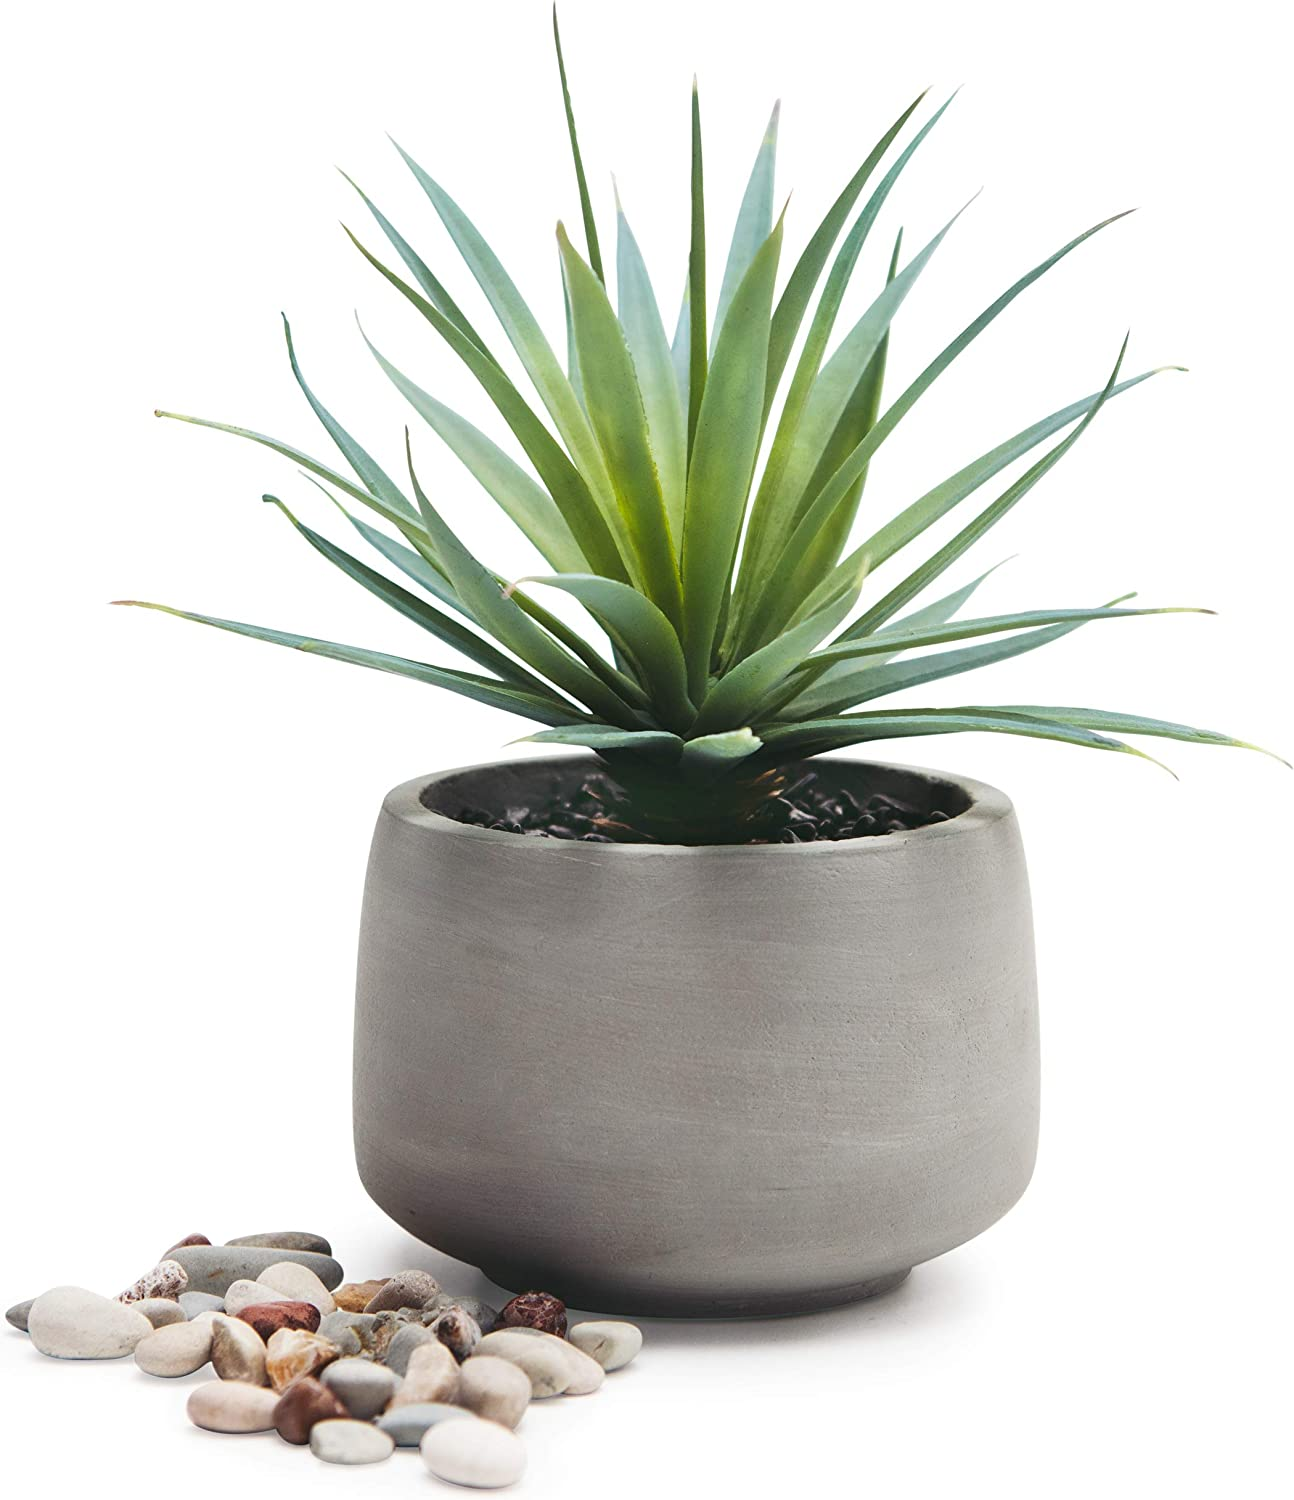 """Kurrajong Farmhouse Gorgeous Life Like 7""""x 4.5"""" Soft Pale Green Artificial Sword Grass Plant in Rustic Pot, Set in Black Pebbles, Lovely feaux Plant in Pot, Faux Plant in Pot, Potted Plant Home Decor"""